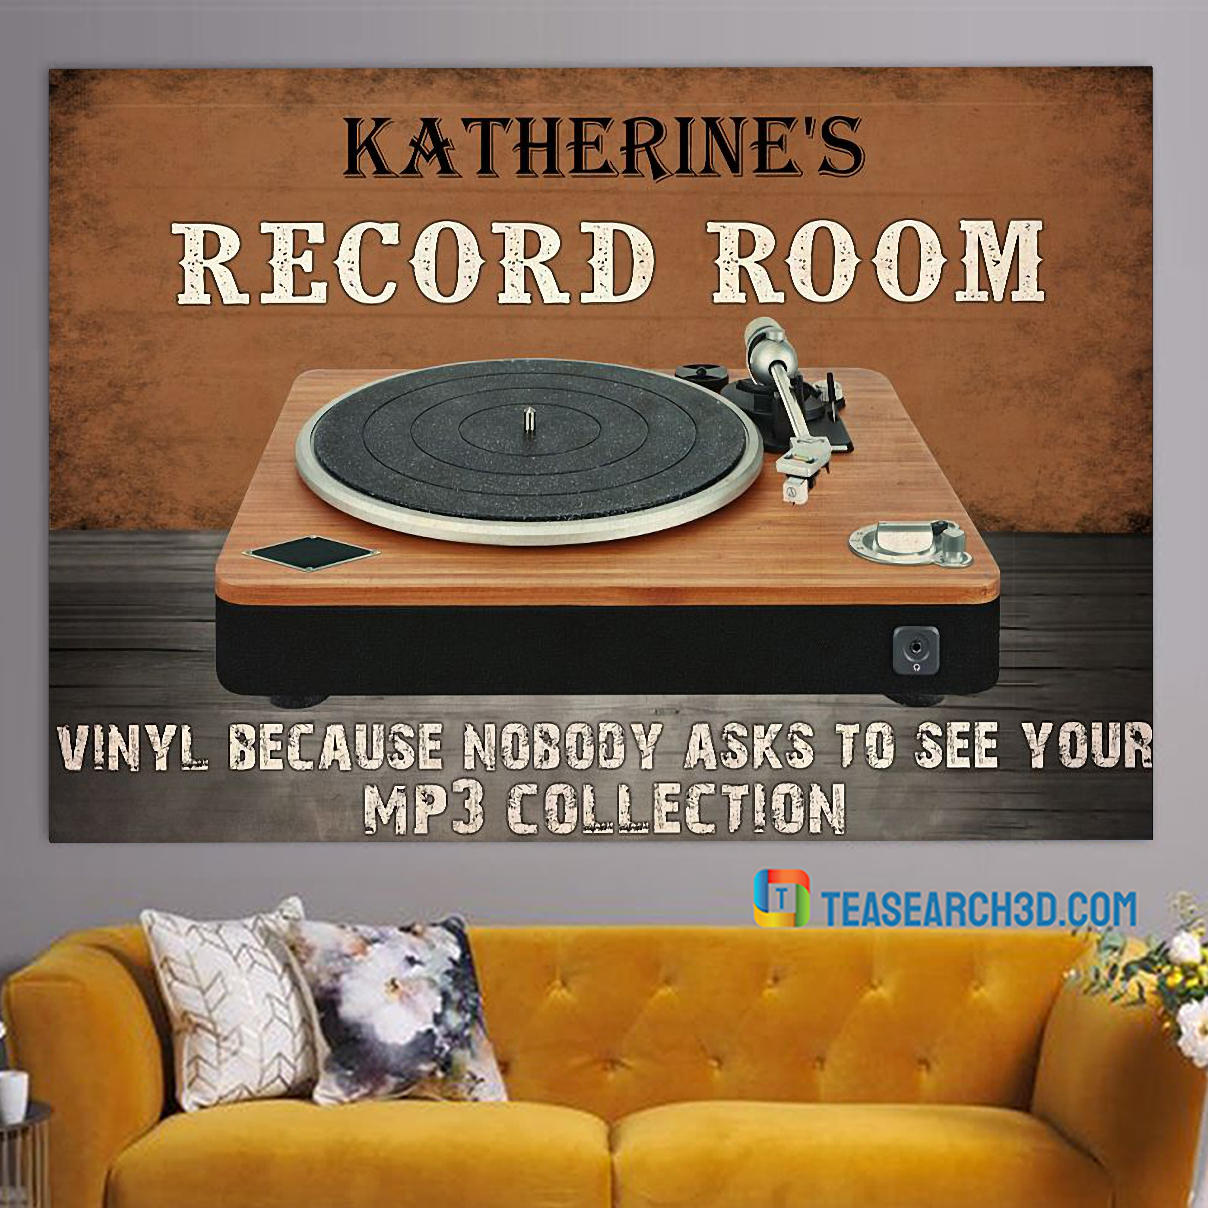 Personalized custom name record room vinyl because nobody asks to see poster A1